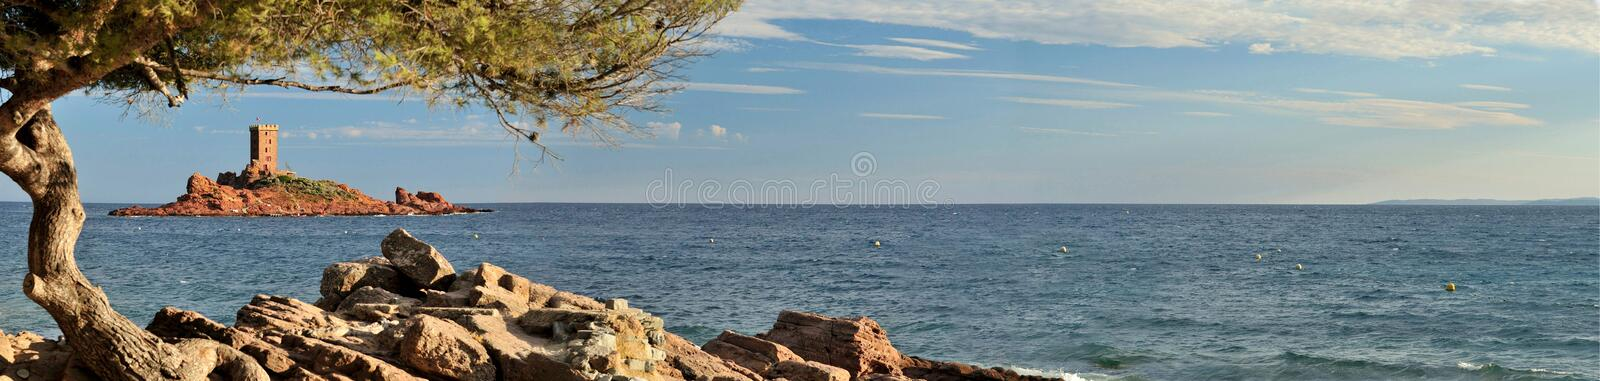 ÃŽle D'Or. Evening scenery at Azure coast with Ile d'Or or Tintin's Black Island in Provence - France stock photos